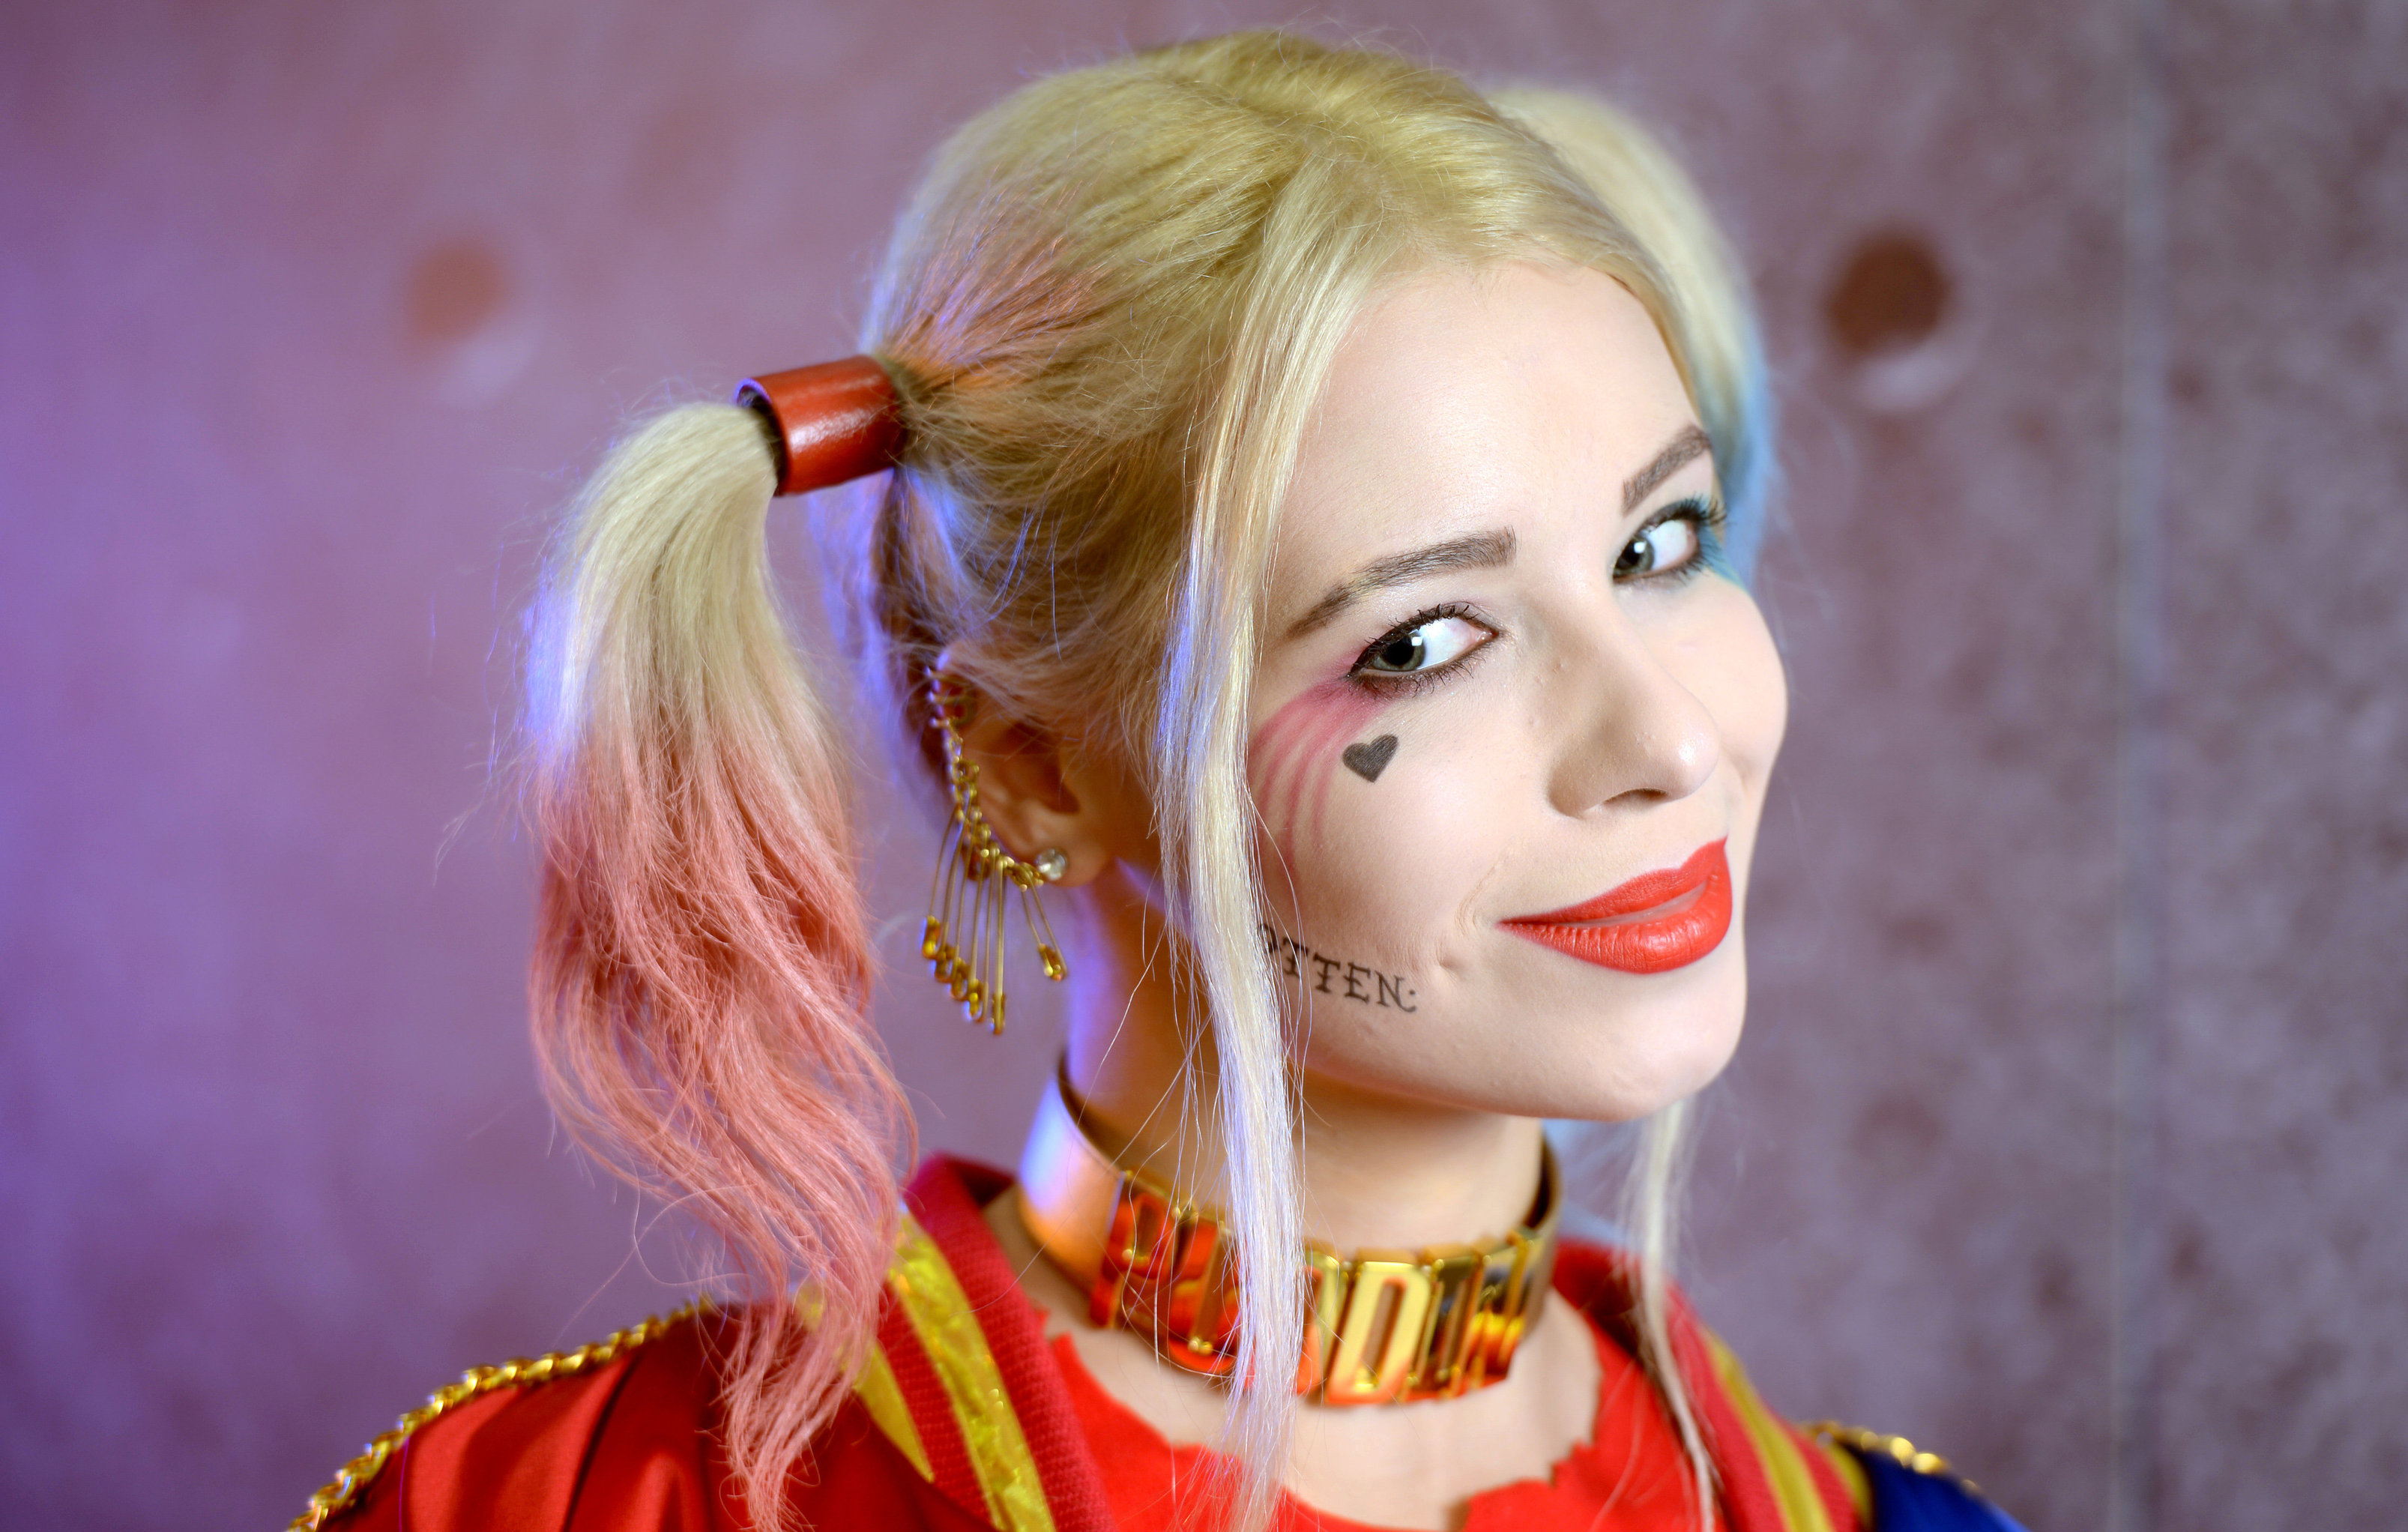 Alice as Harley Quinn, a character from DC Comics universe